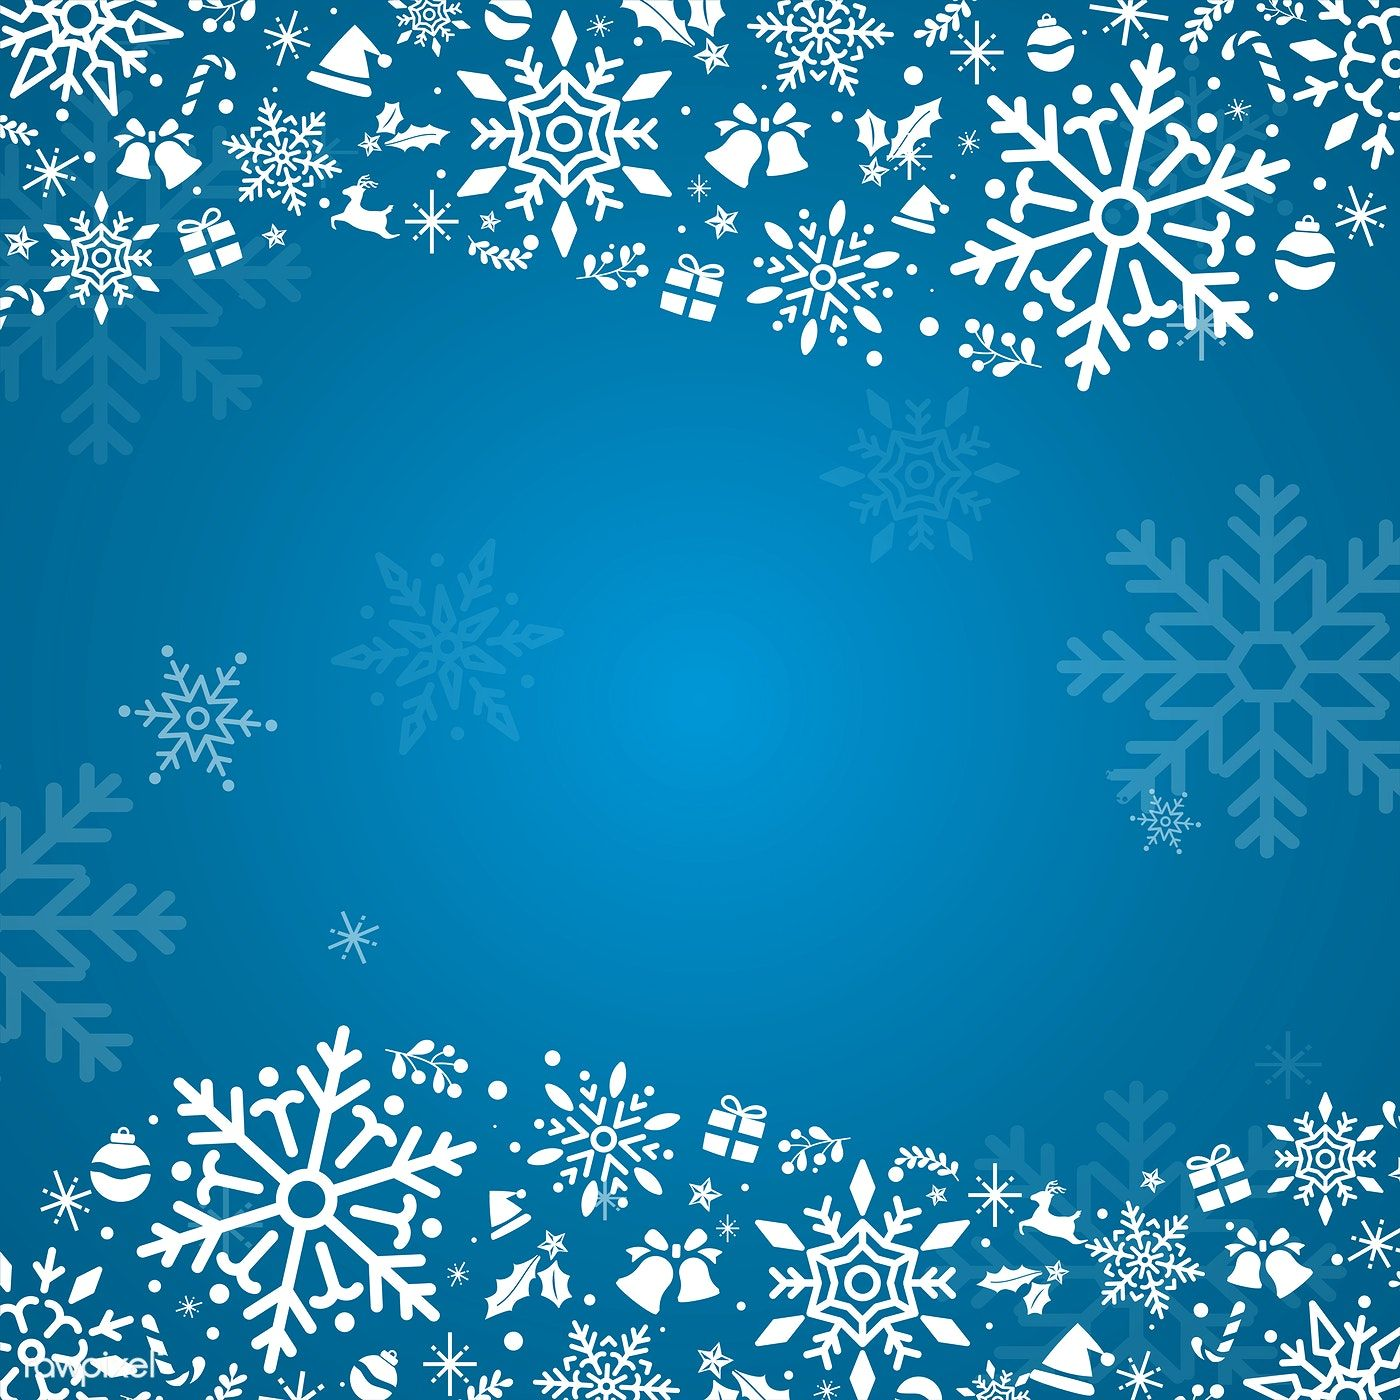 Blue Christmas Winter Holiday Background With Snowflake Vector Free Image By Rawp Free Christmas Backgrounds Free Christmas Greeting Cards Holiday Background